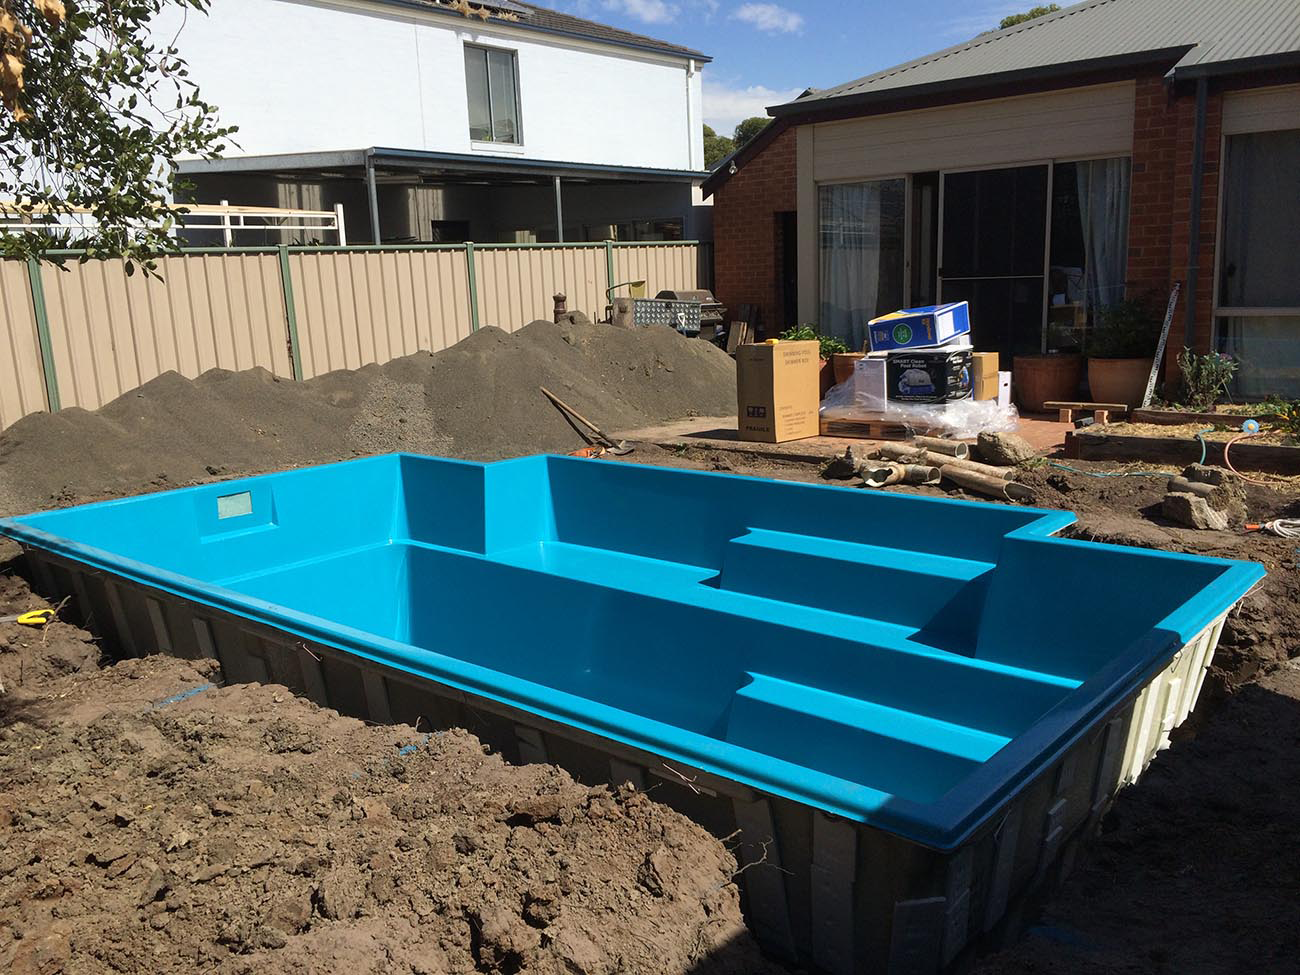 Small living in style landscaping and a lap pool lisa for Small lap pool designs